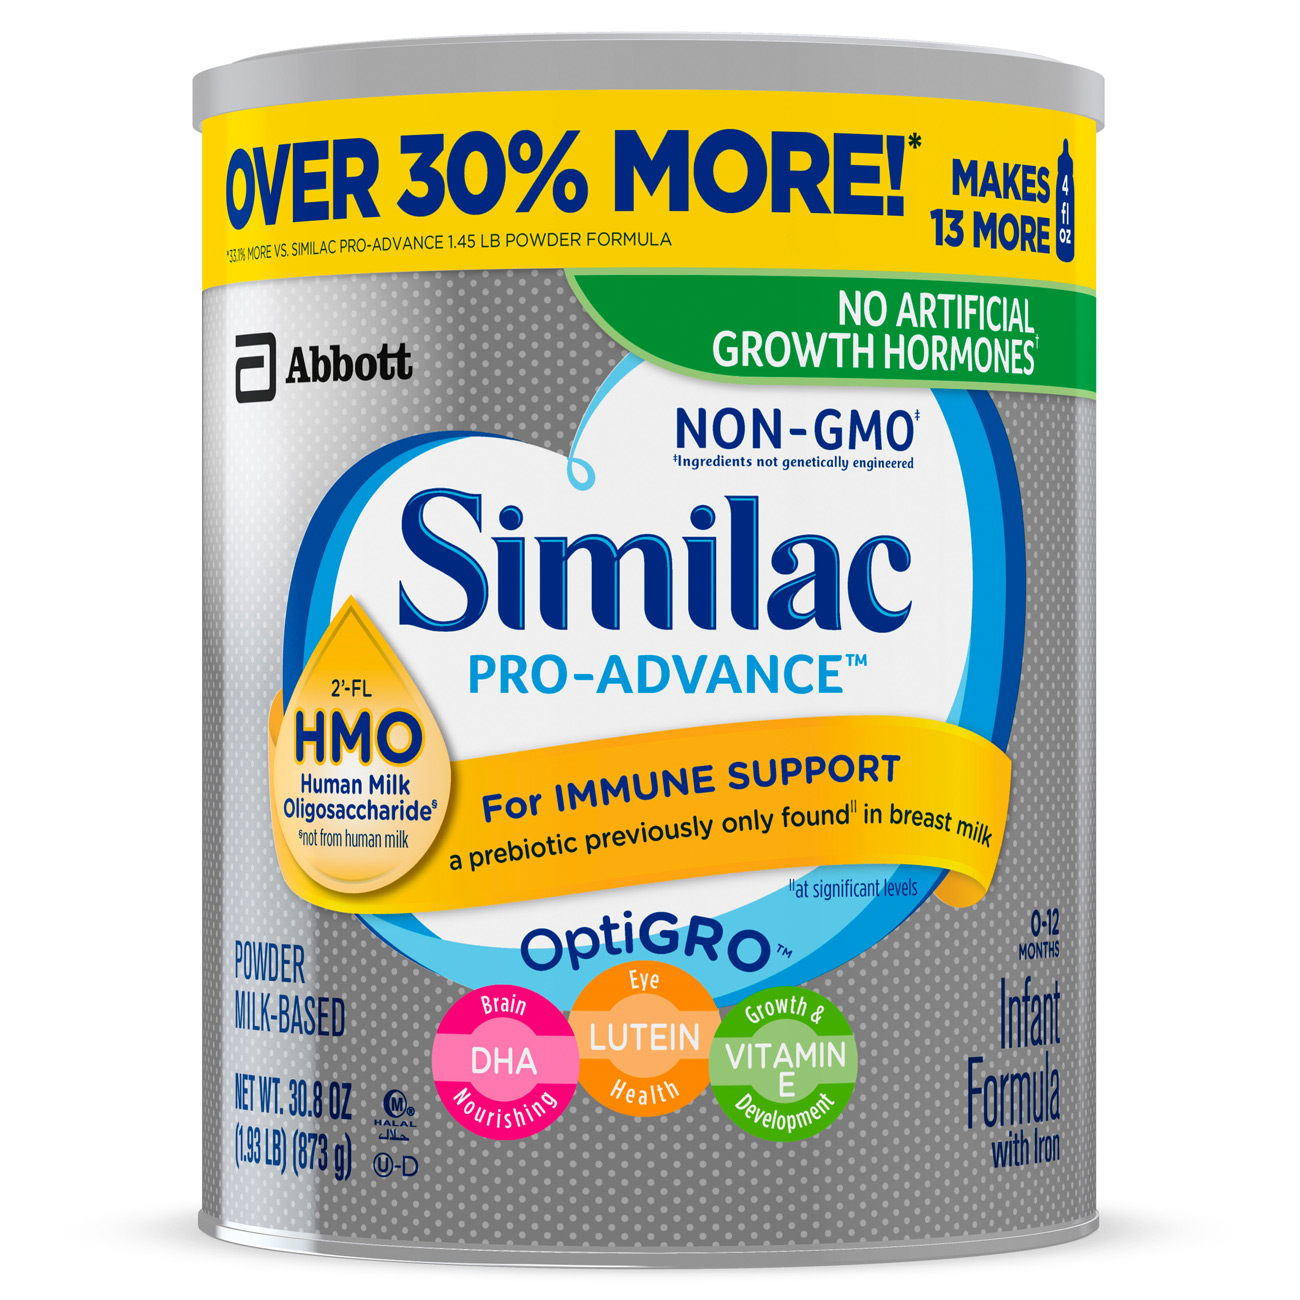 Similac Pro-Advance Infant Formula with Iron, with 2'-FL HMO, For Immune Support, Baby Formula, Powder, 30.8... by Similac